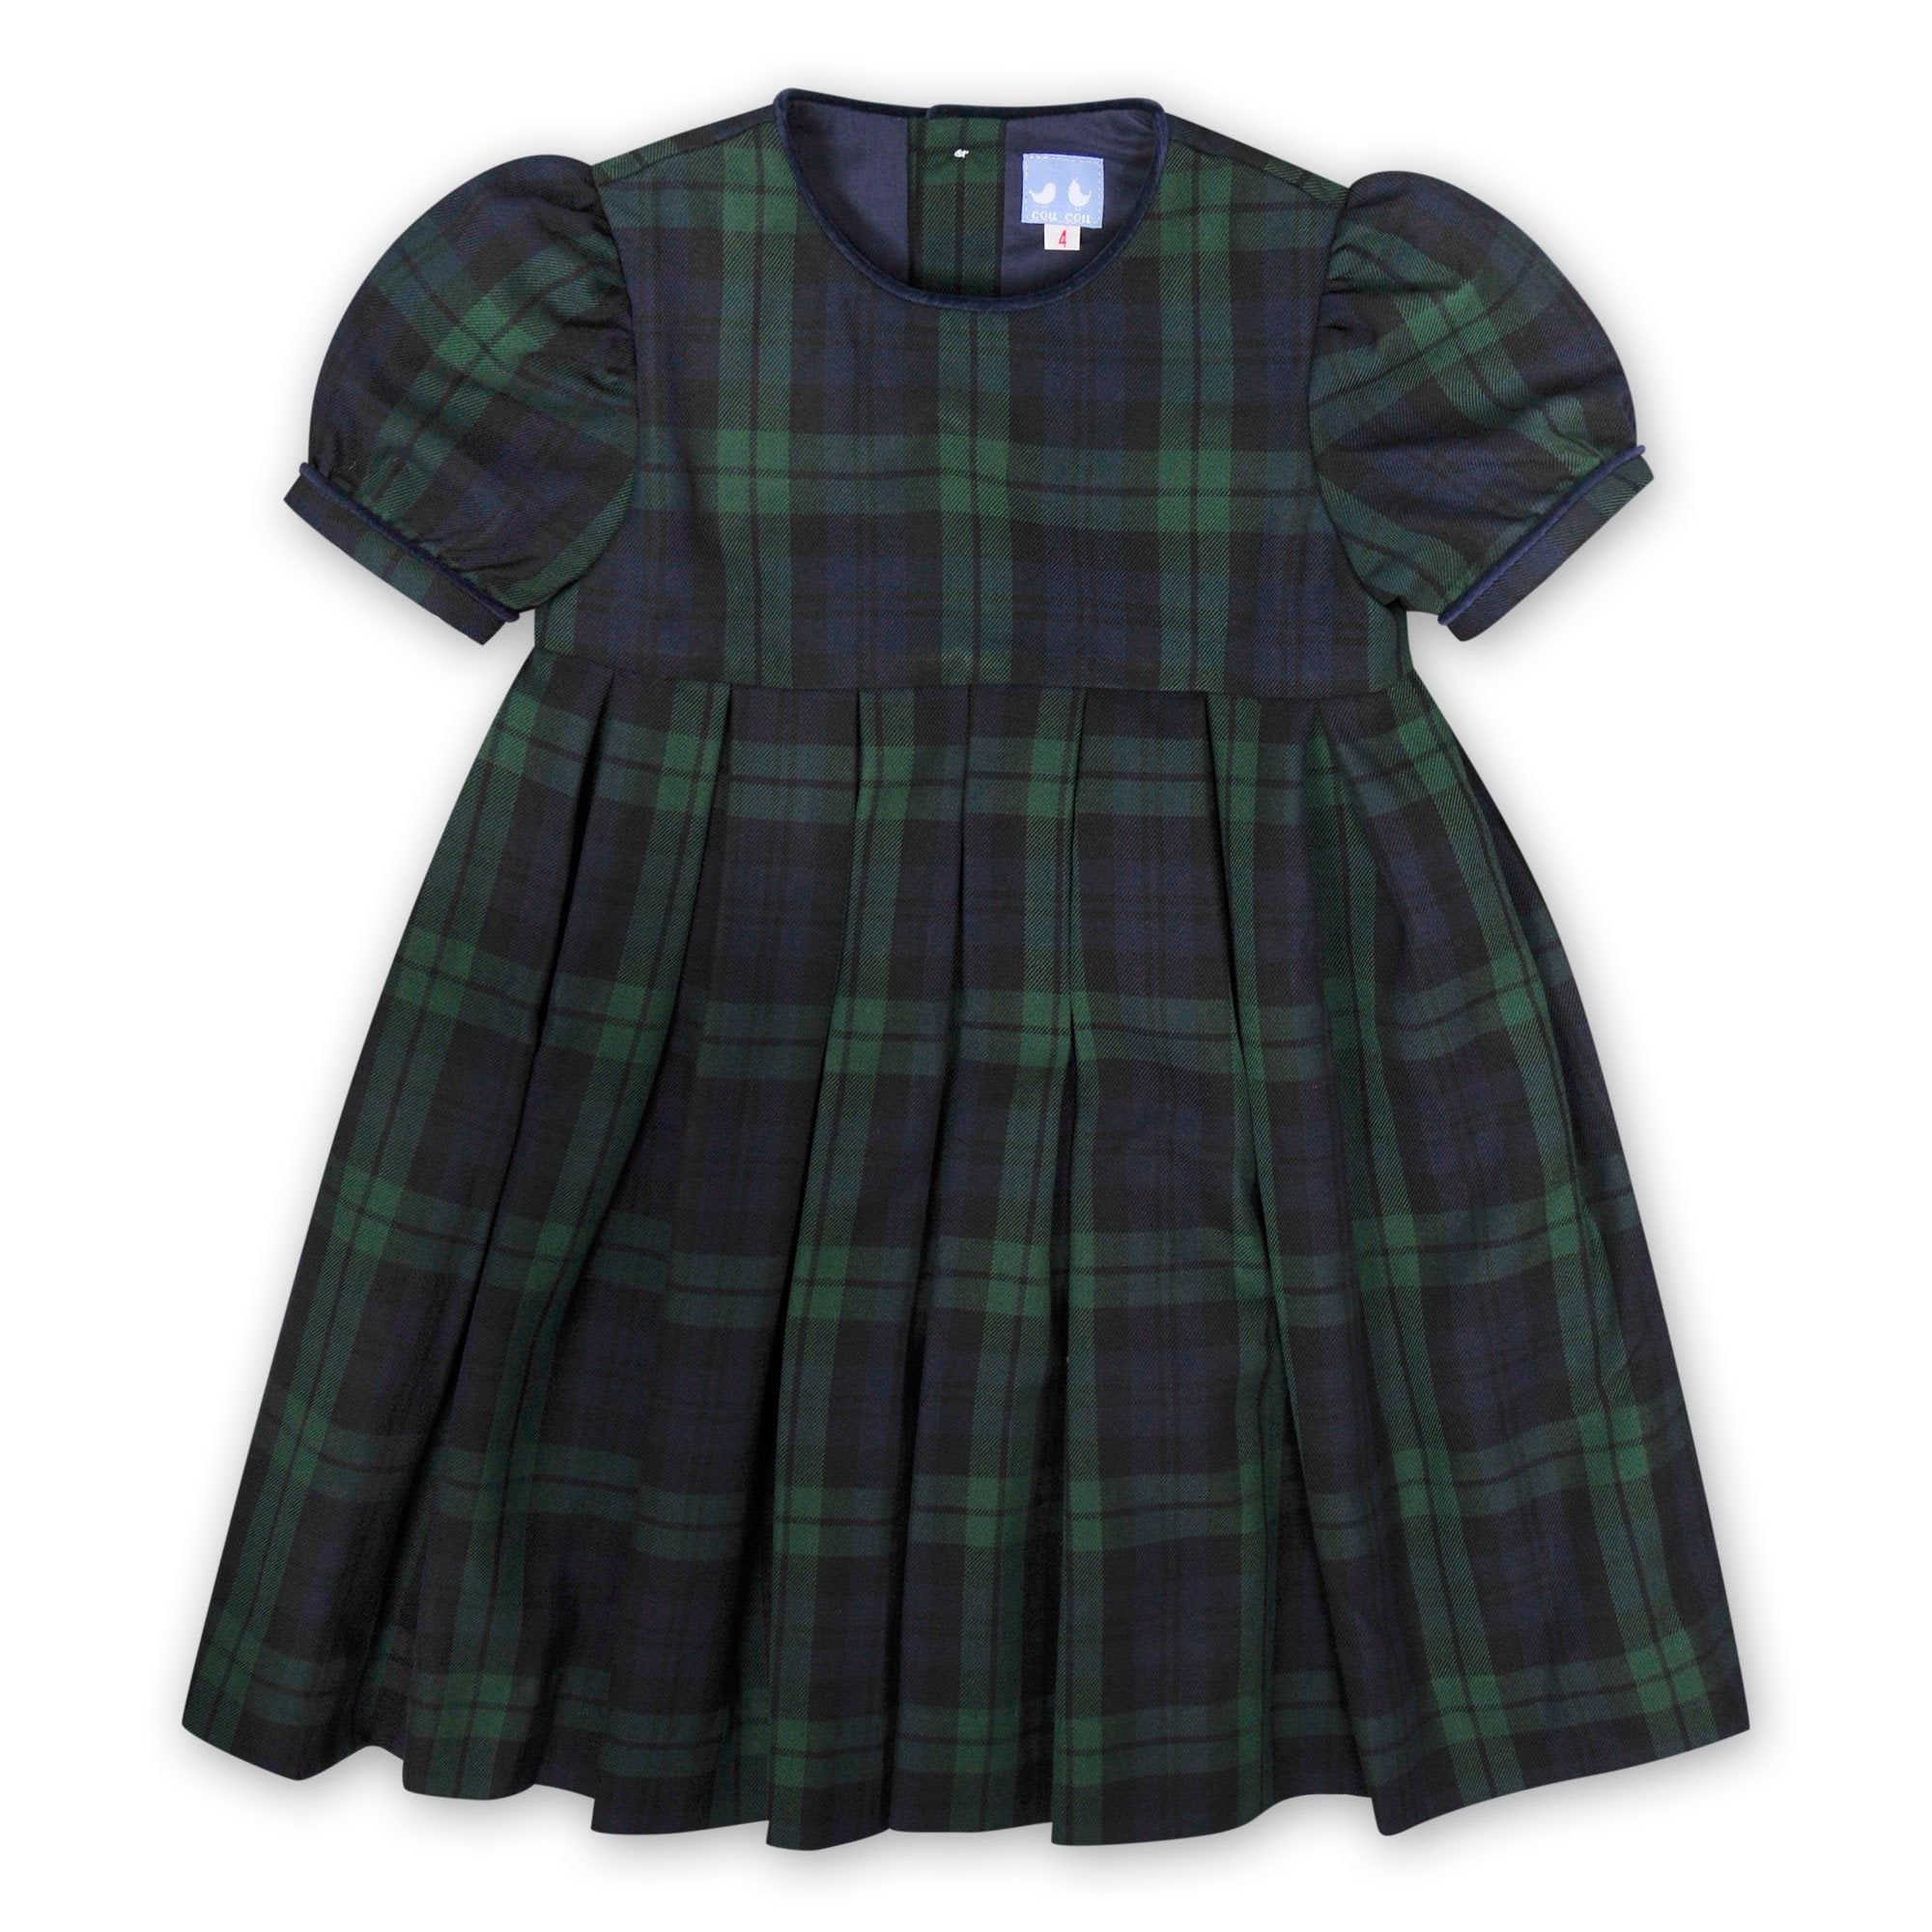 GIRLS COLLARED TARTAN DRESS